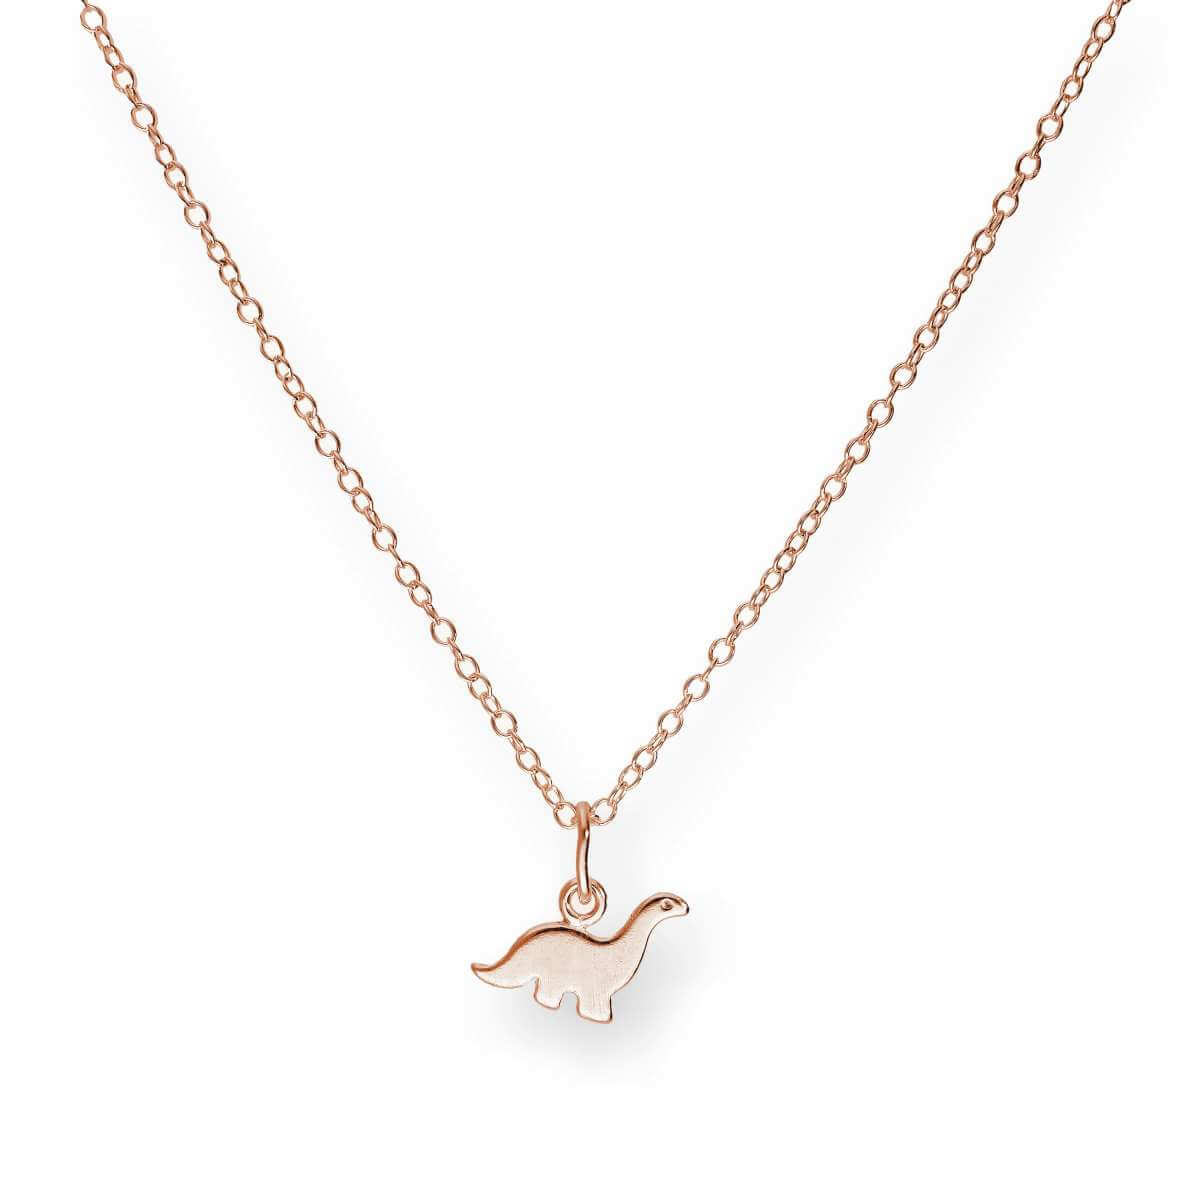 Rose Gold Plated Small Sterling Silver Dinosaur Necklace 18